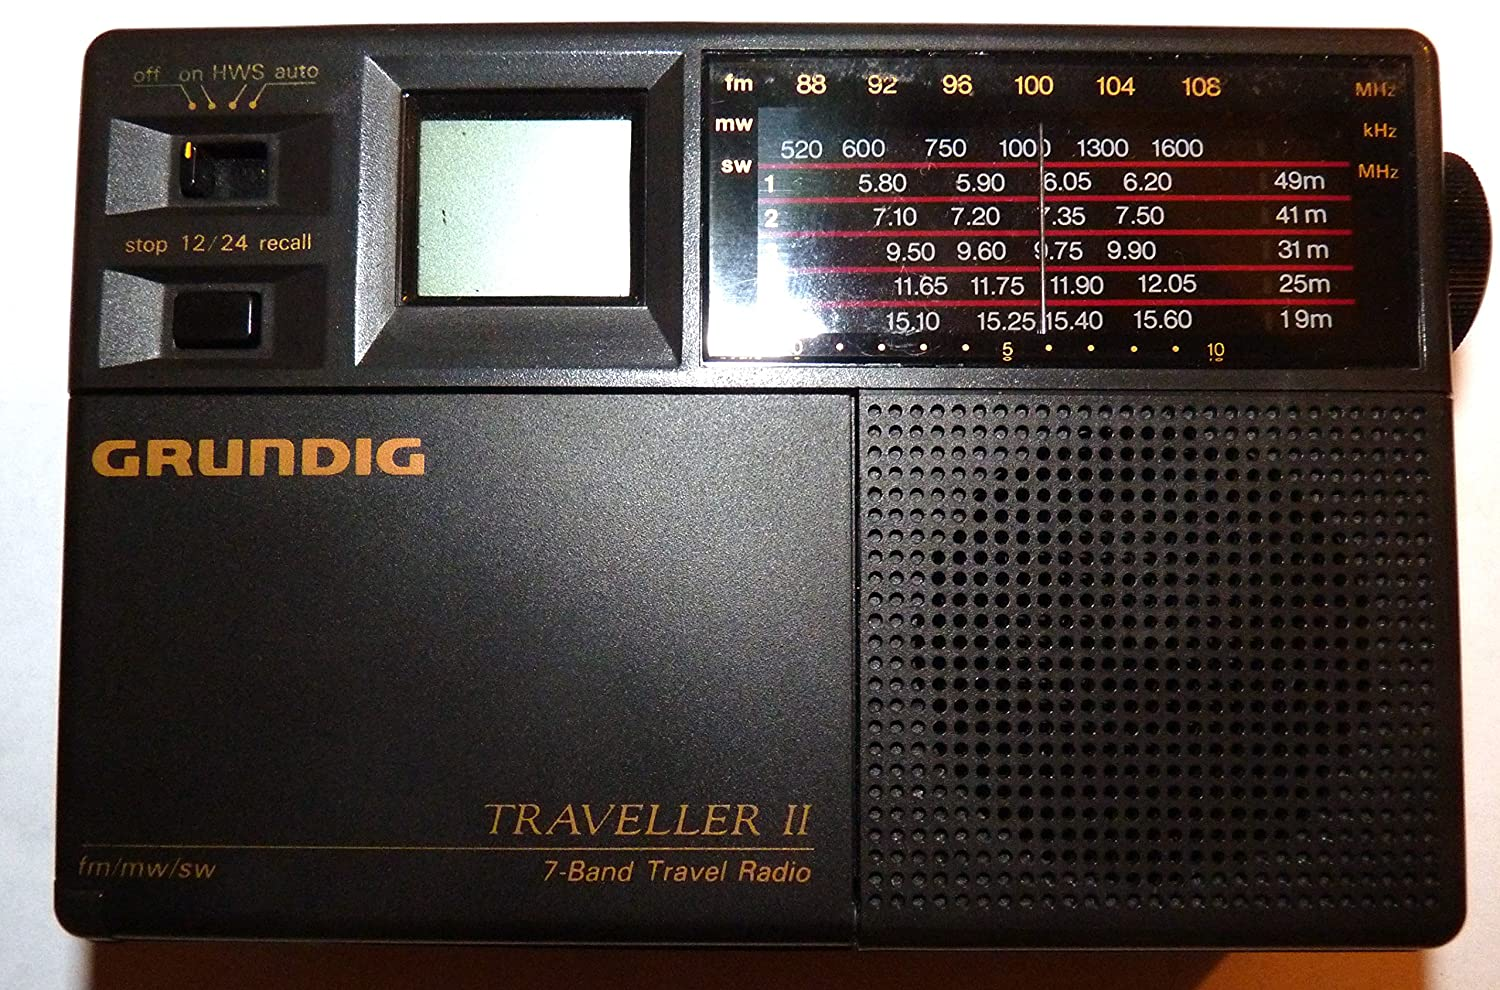 Amazon.com: Grundig Traveller II 7 Band Worldtime Travel Radio: Home Audio  & Theater